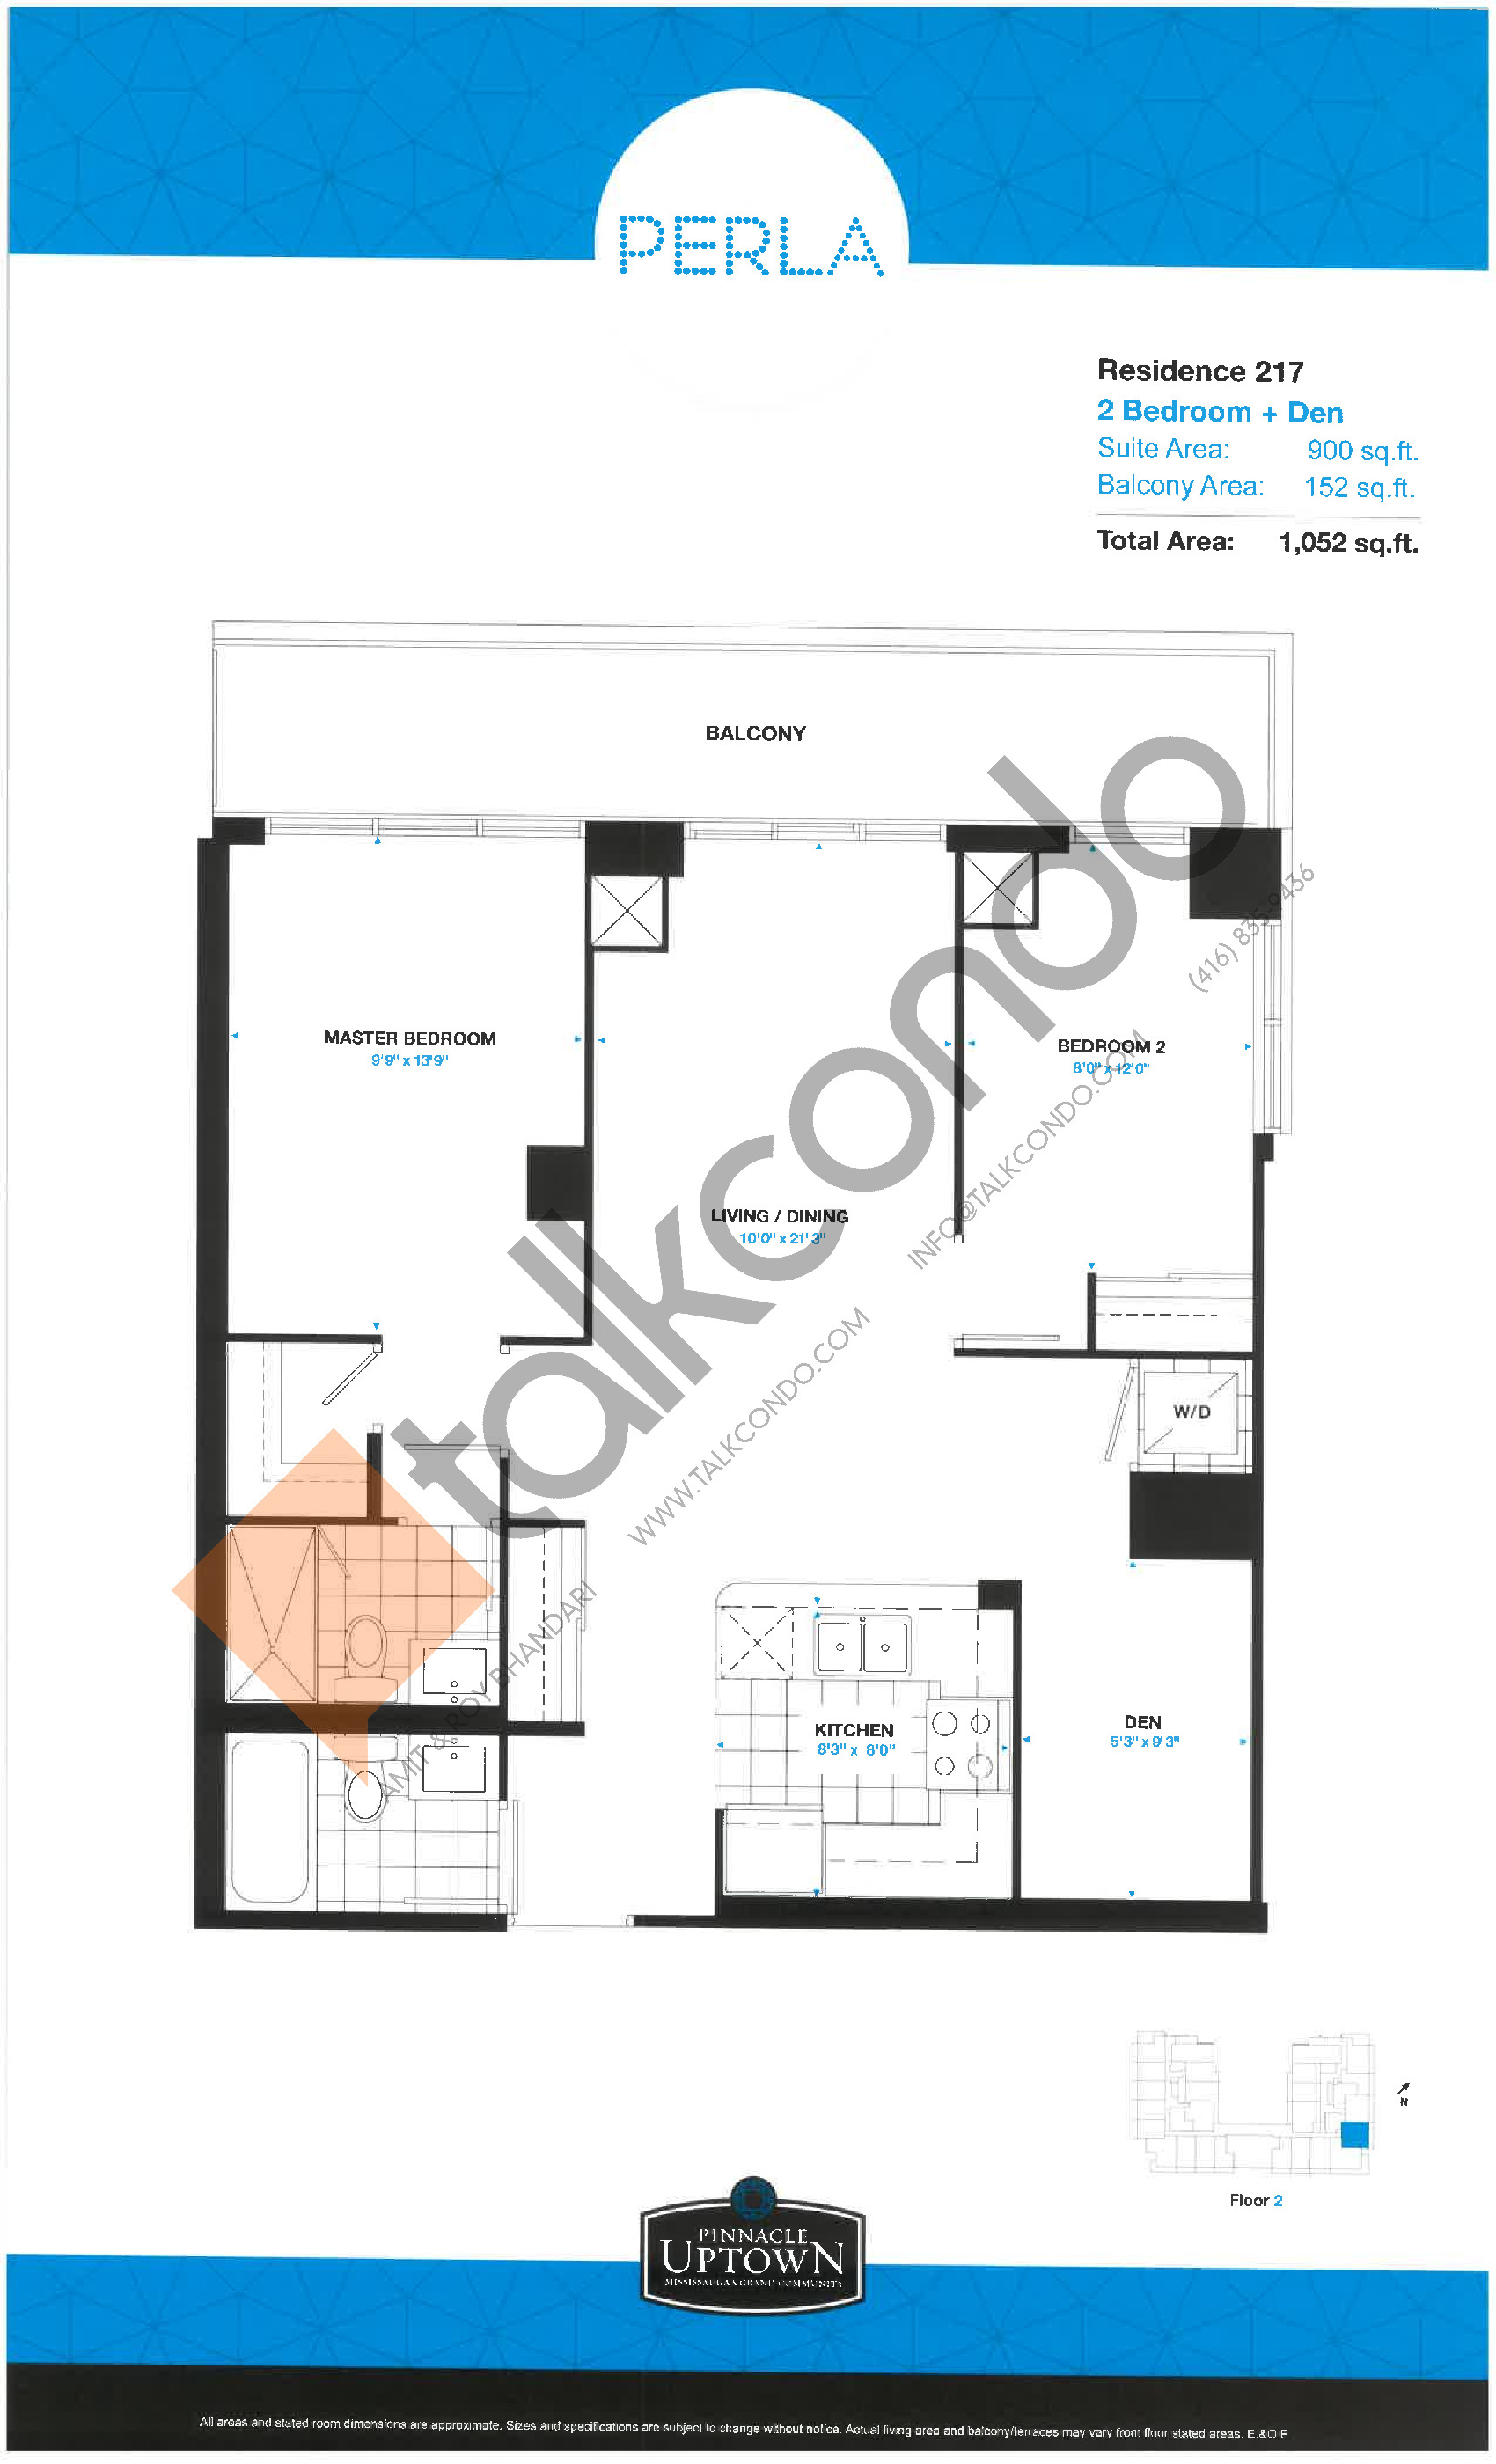 Residence 217 - East Tower Floor Plan at Perla Towers Condos - 900 sq.ft